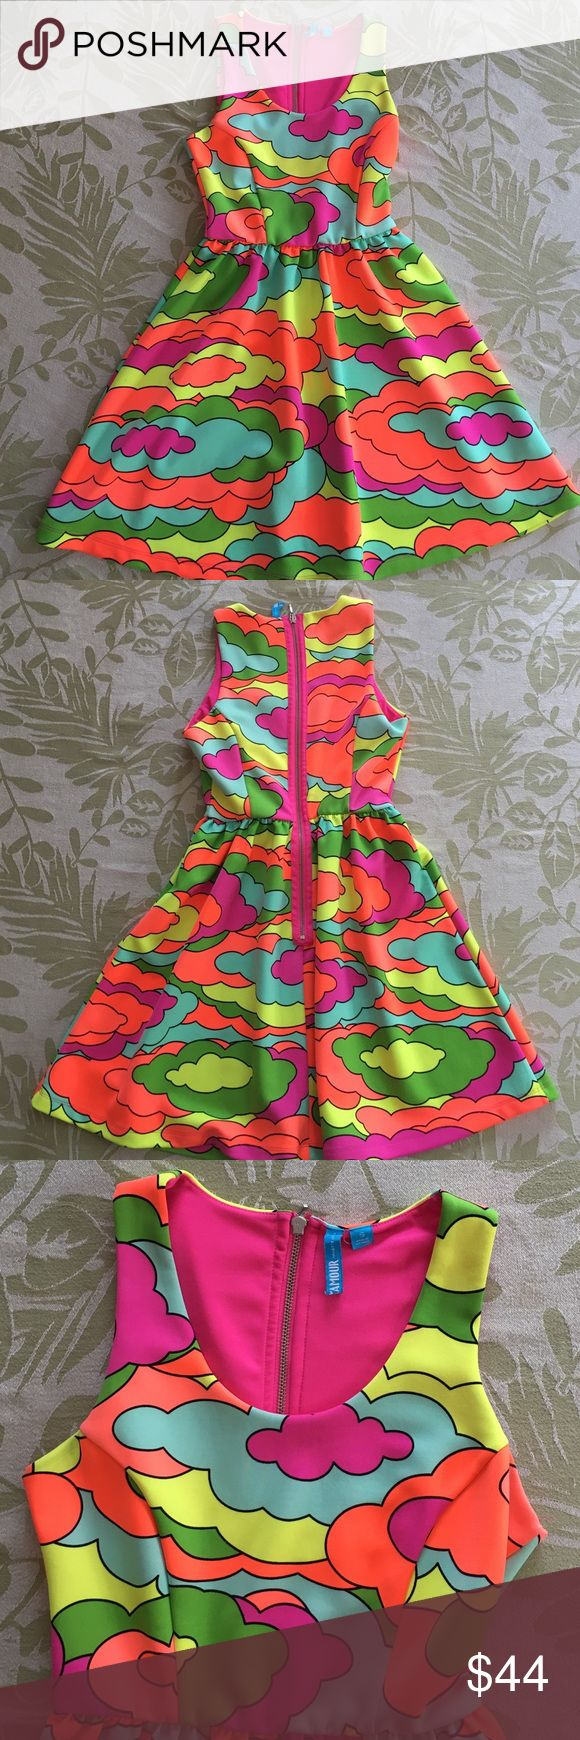 Nanette Lepore Neon color dress Small Beautiful Nanette dress with multi neon colors in clods shapes. Back zipper. Elastic waistband. 93% polyester 7% spandex Nanette Lepore Dresses Mini